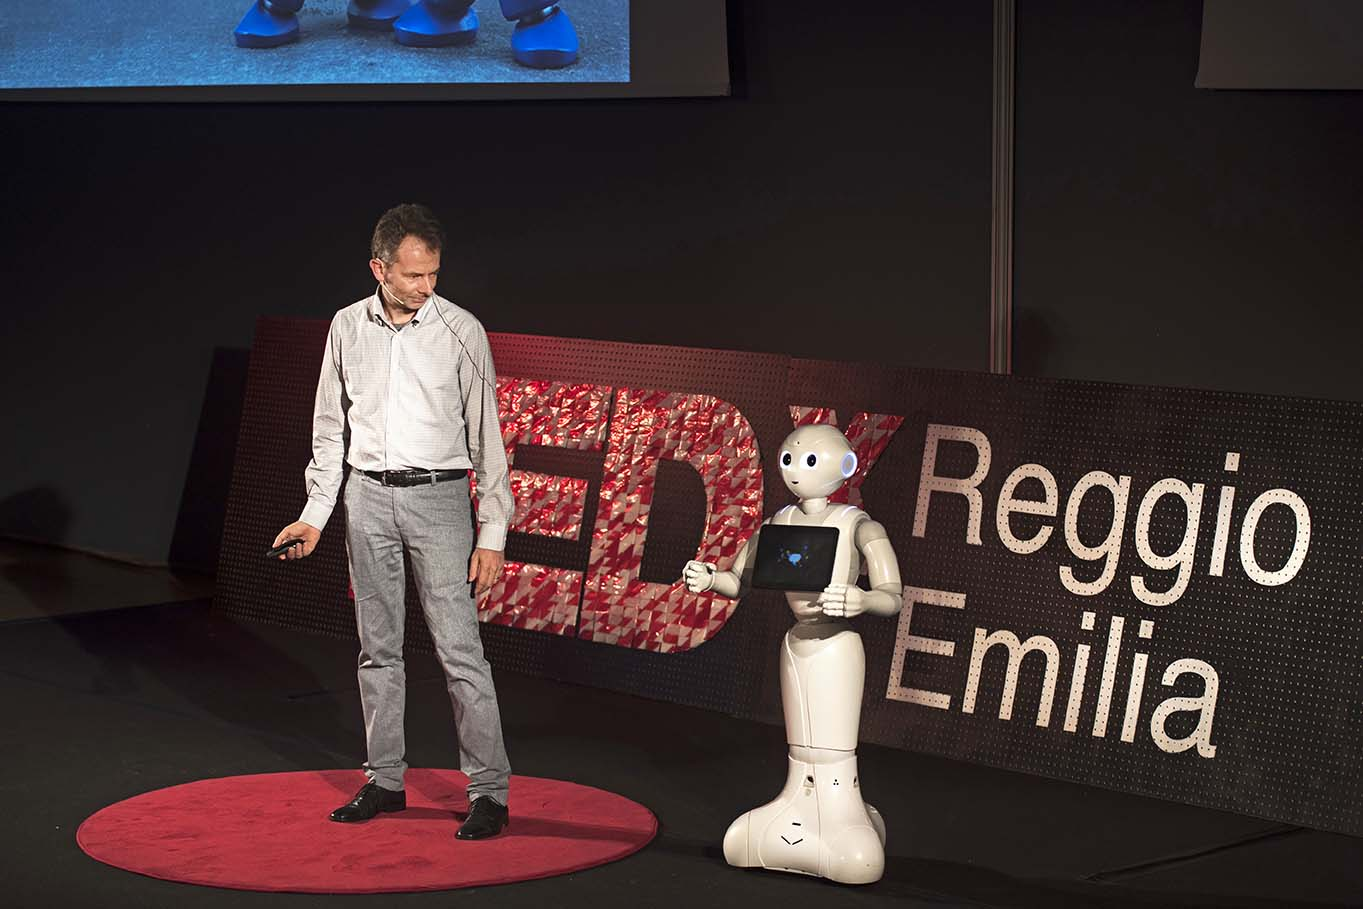 tedx pepper robot